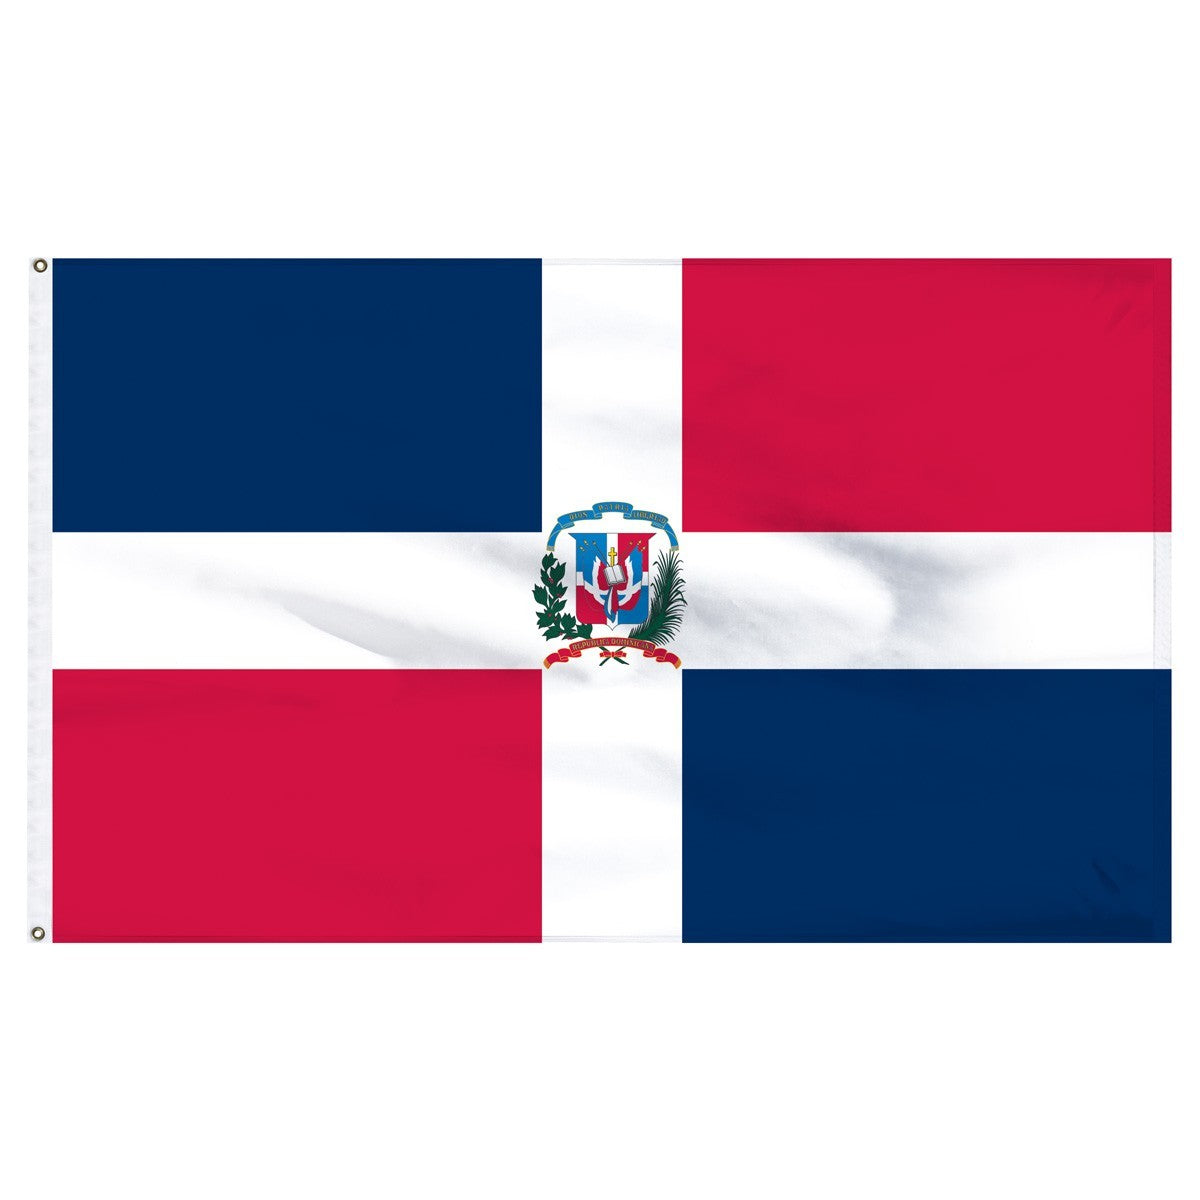 Dominican Republic 3' x 5' Outdoor Nylon Flag